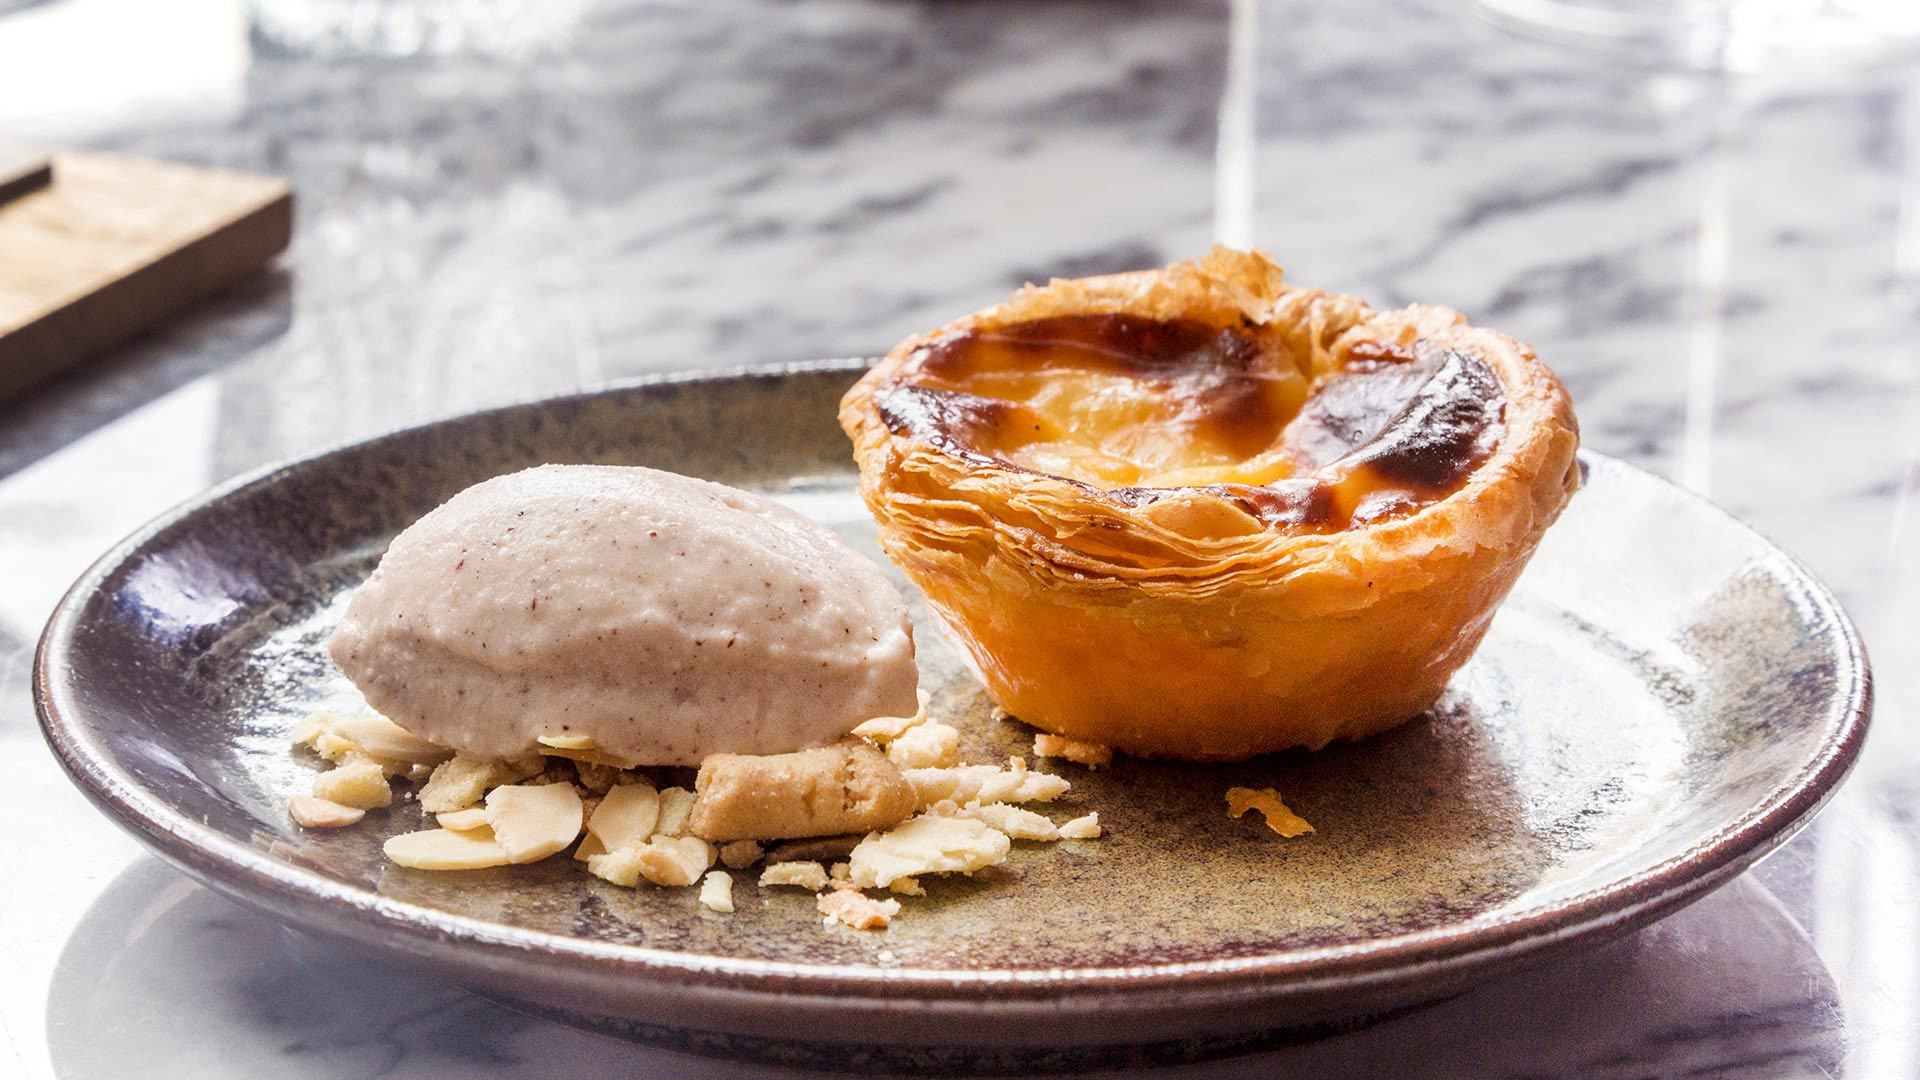 Pastel de nata with cinnamon ice cream